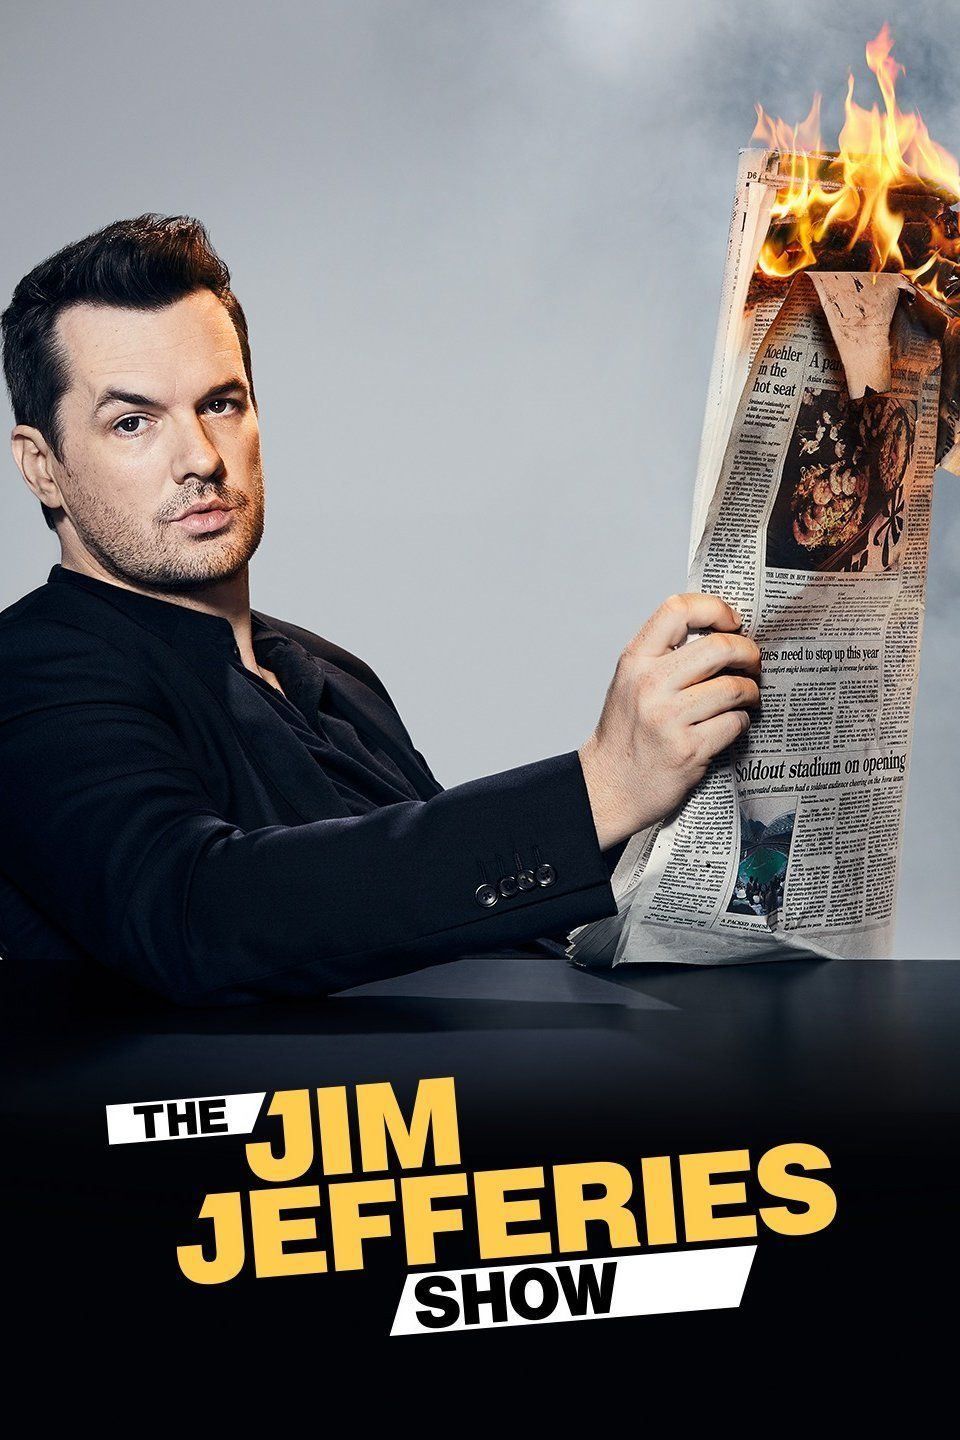 The Jim Jefferies Show cover